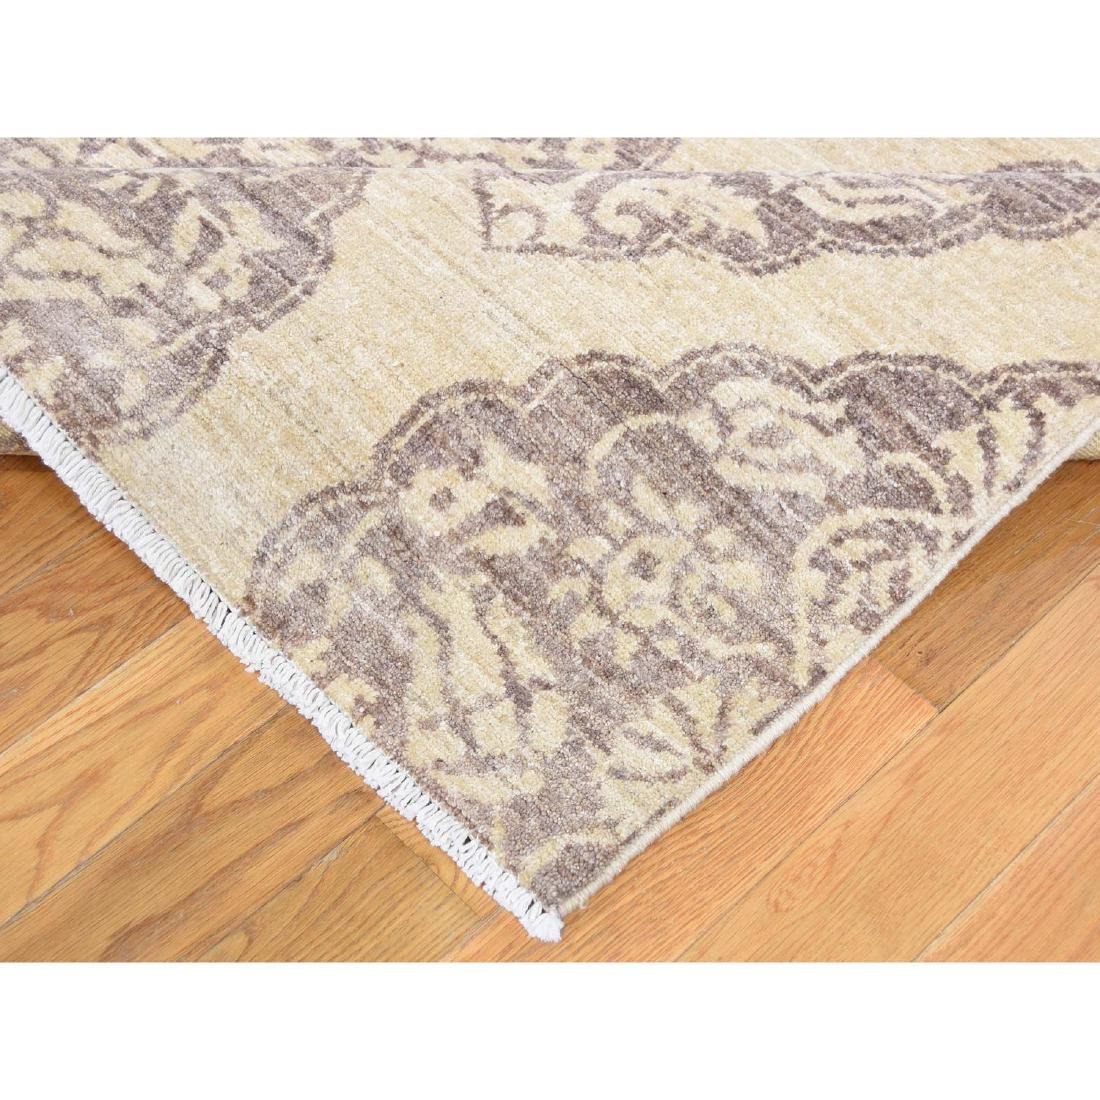 Pure Wool Peshawar with Mughal Design Hand Knotted Rug - 7